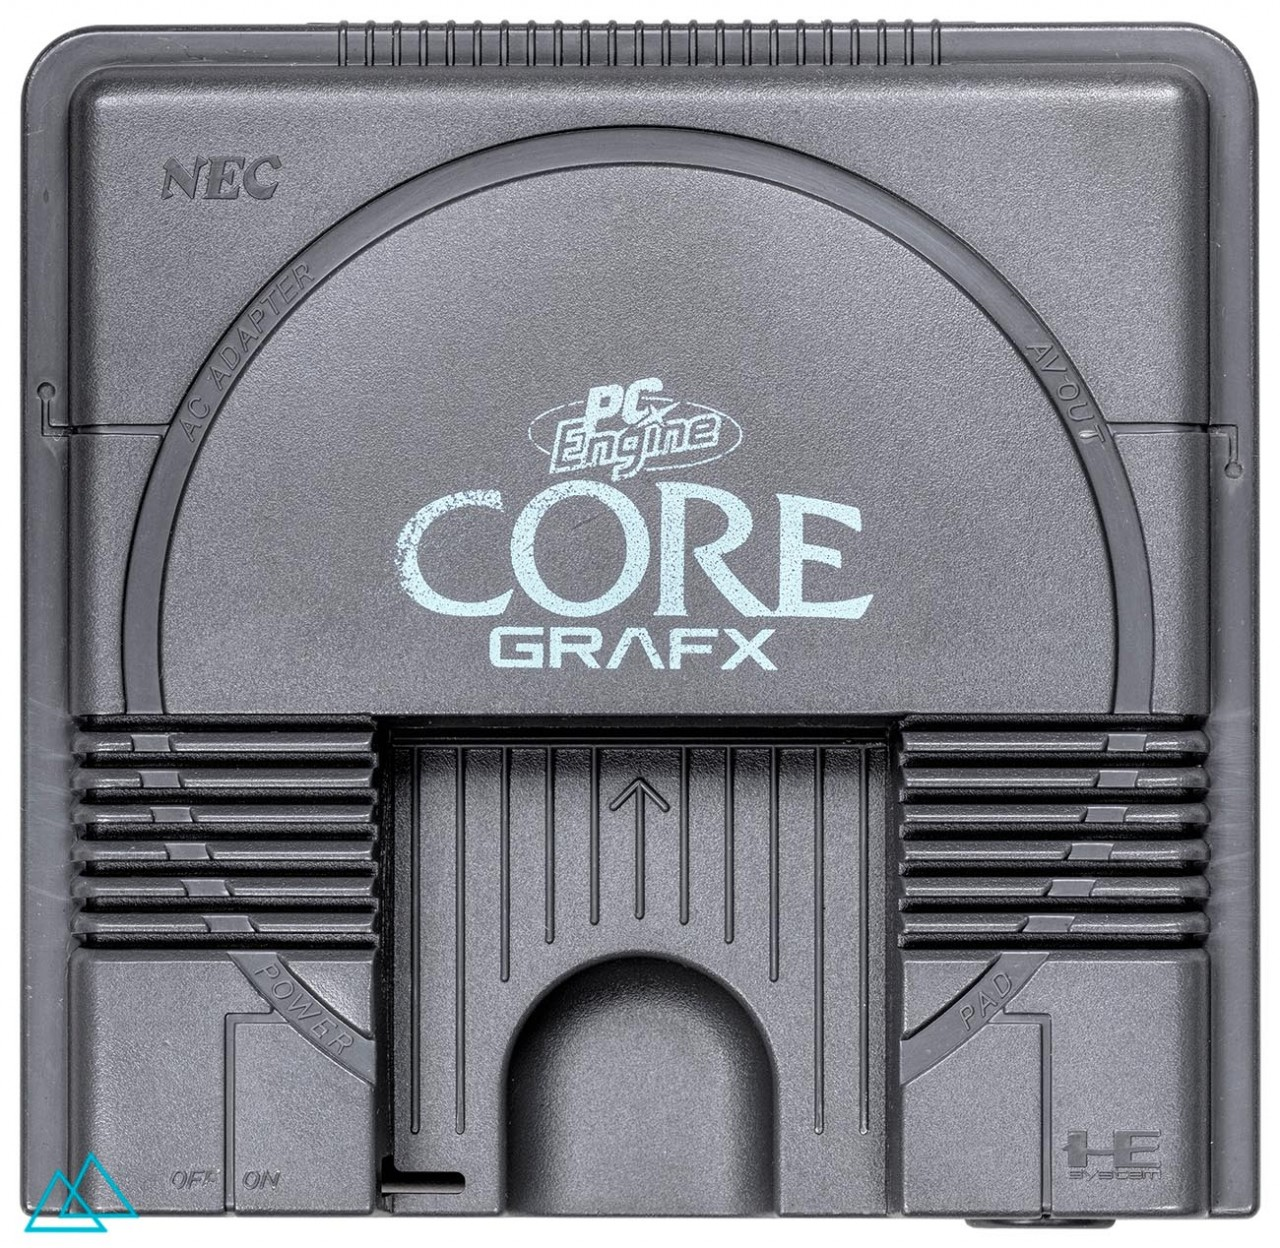 # 079 NEC PC Engine Core Grafx